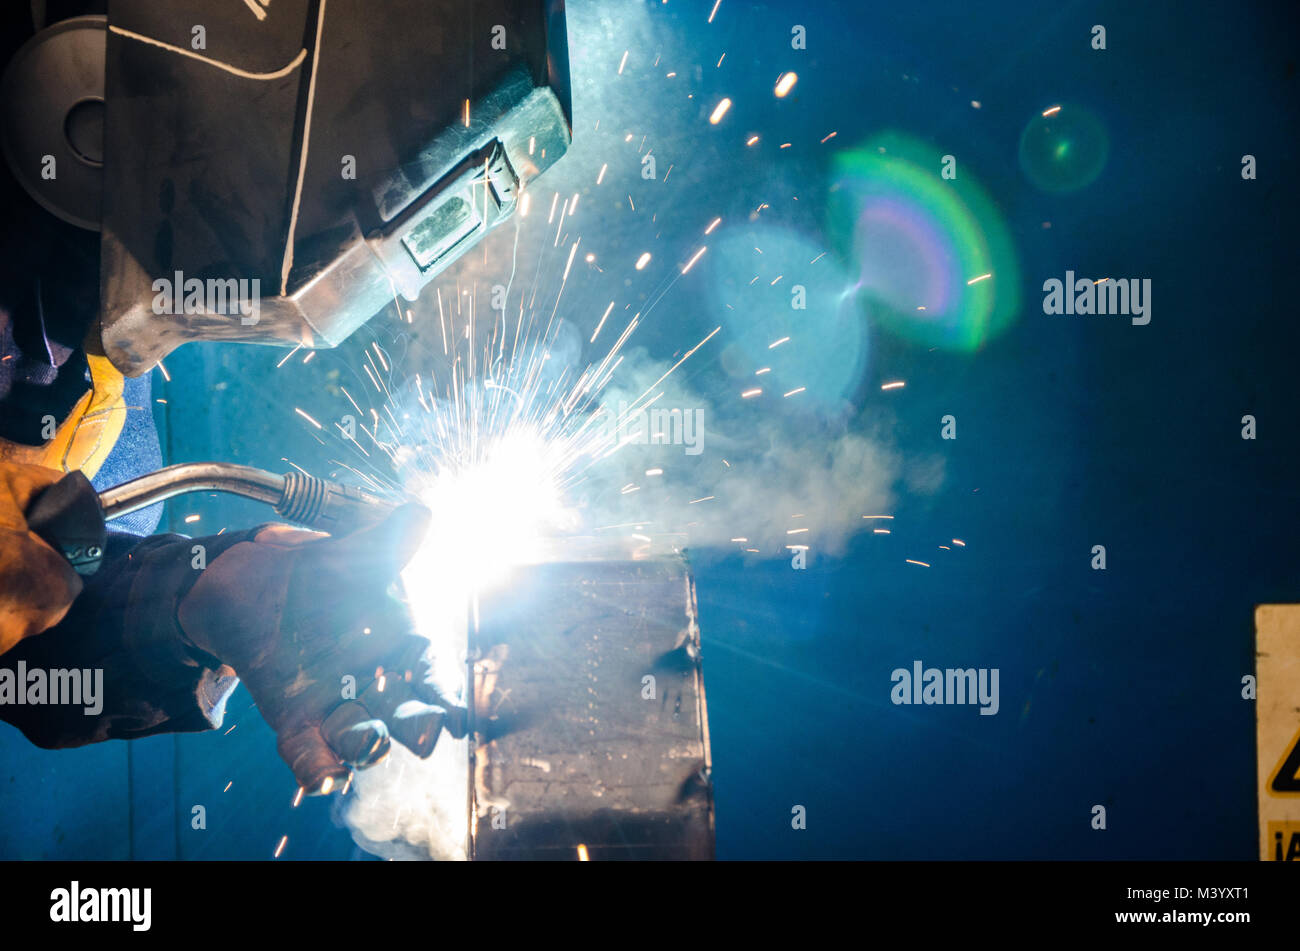 Welding a metal structure - Stock Image